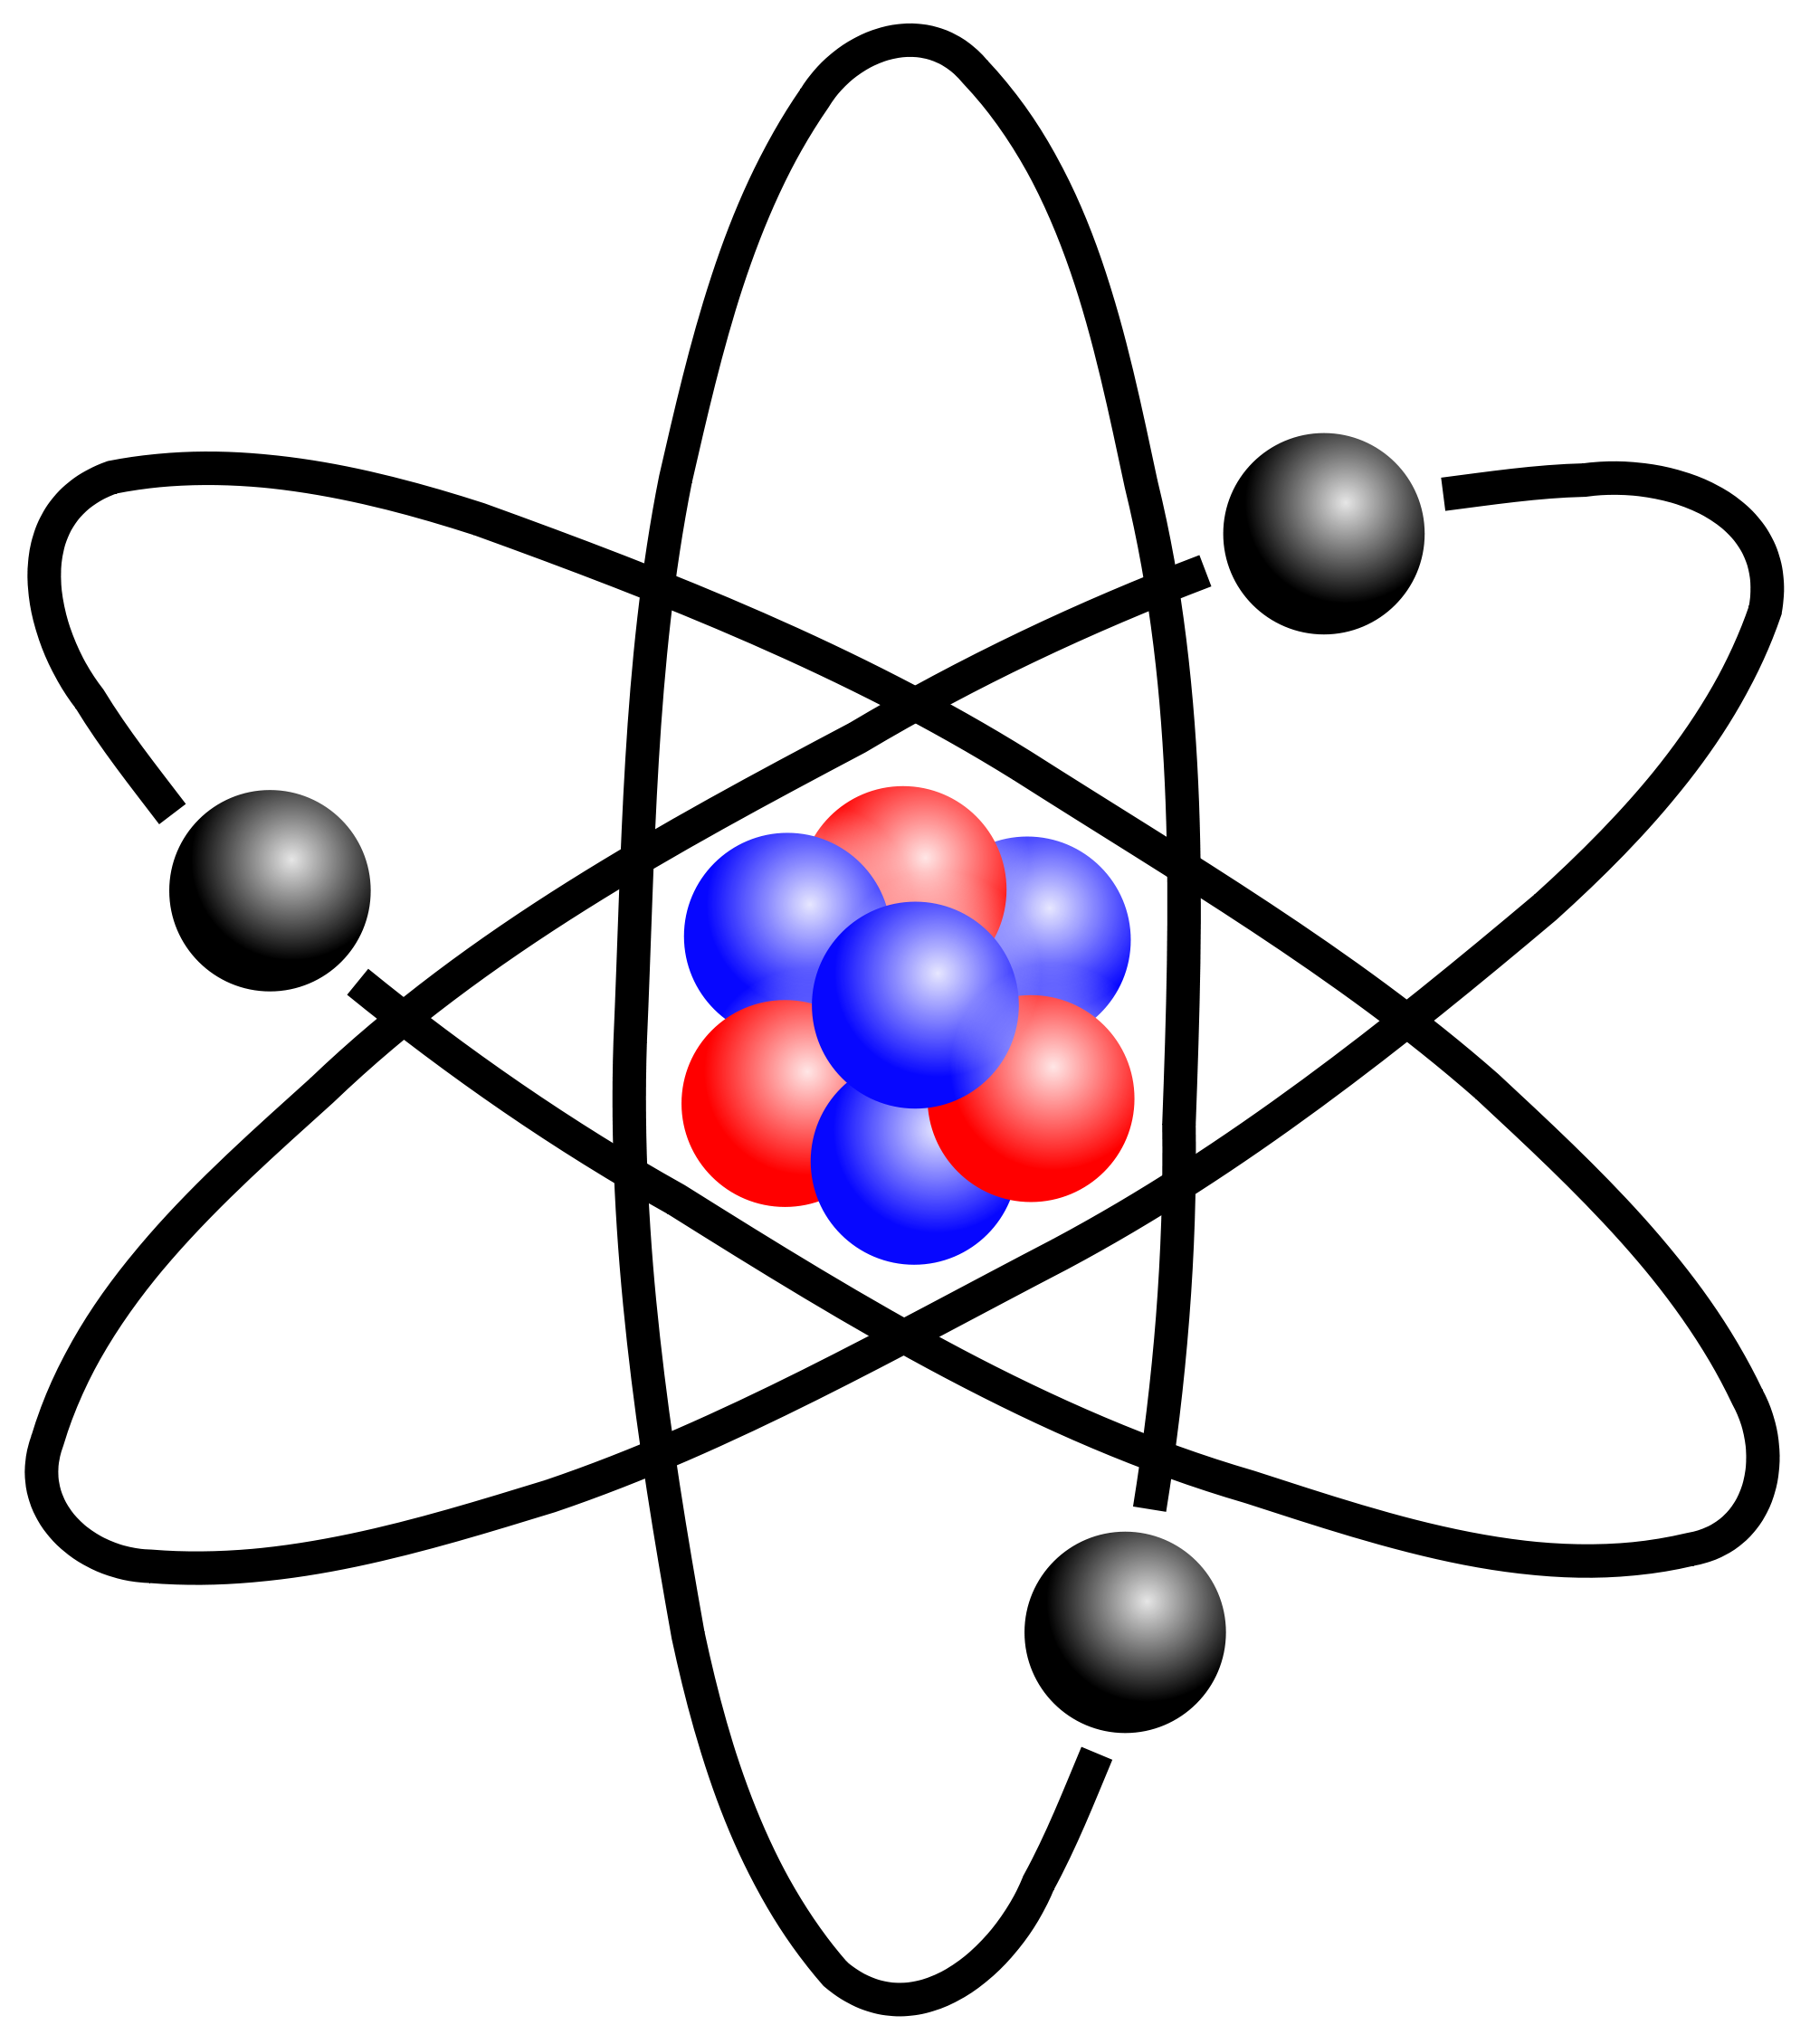 The atom png